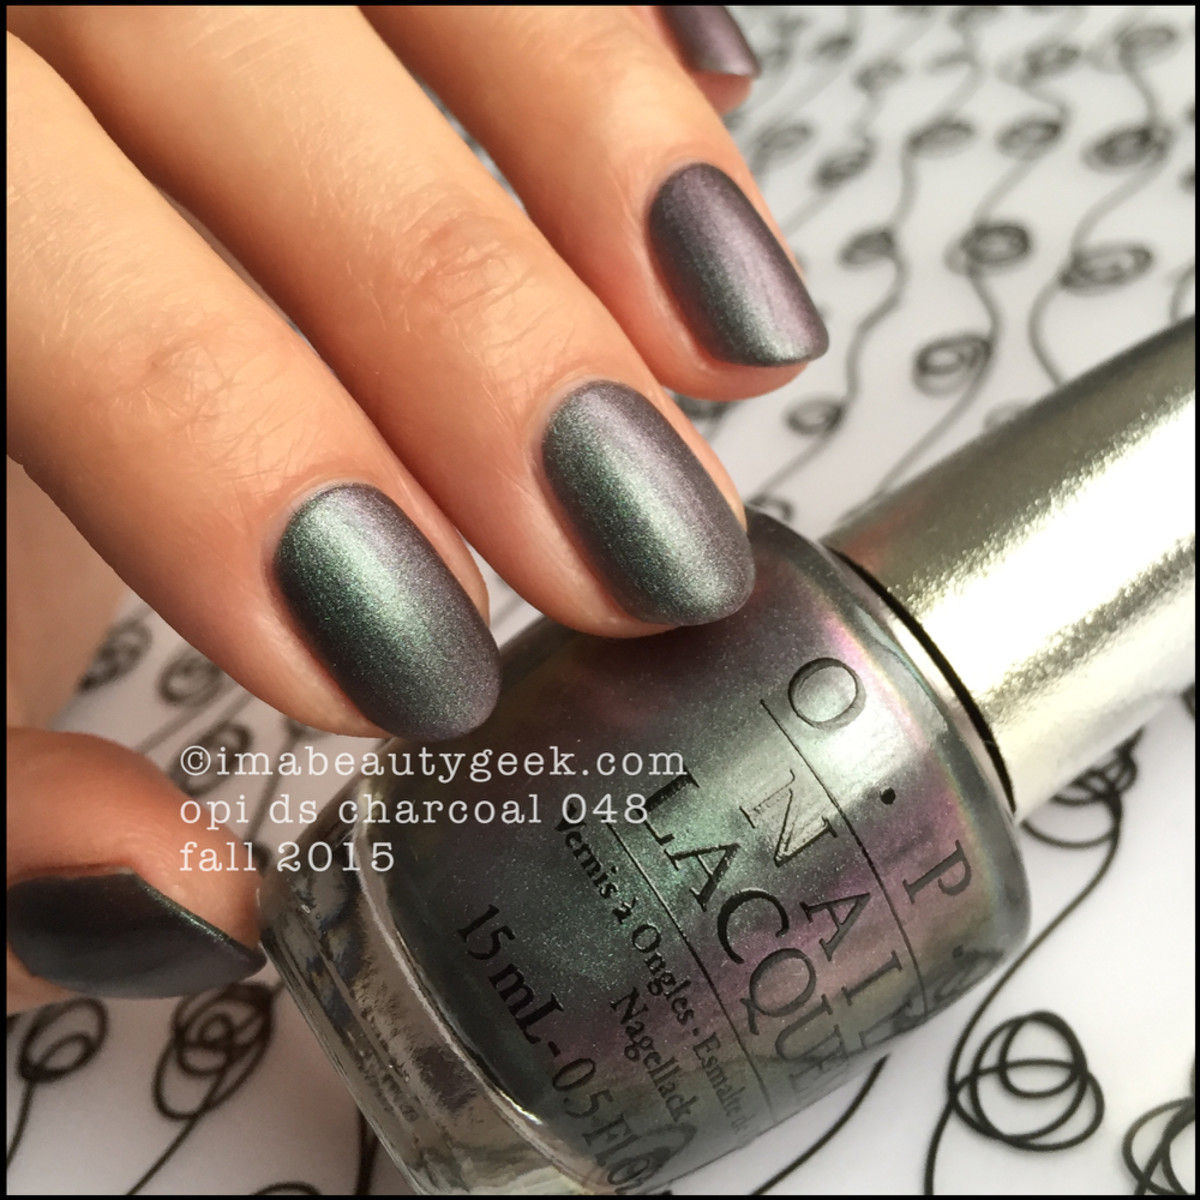 OPI DS Charcoal 048 OPI DS 2015_1